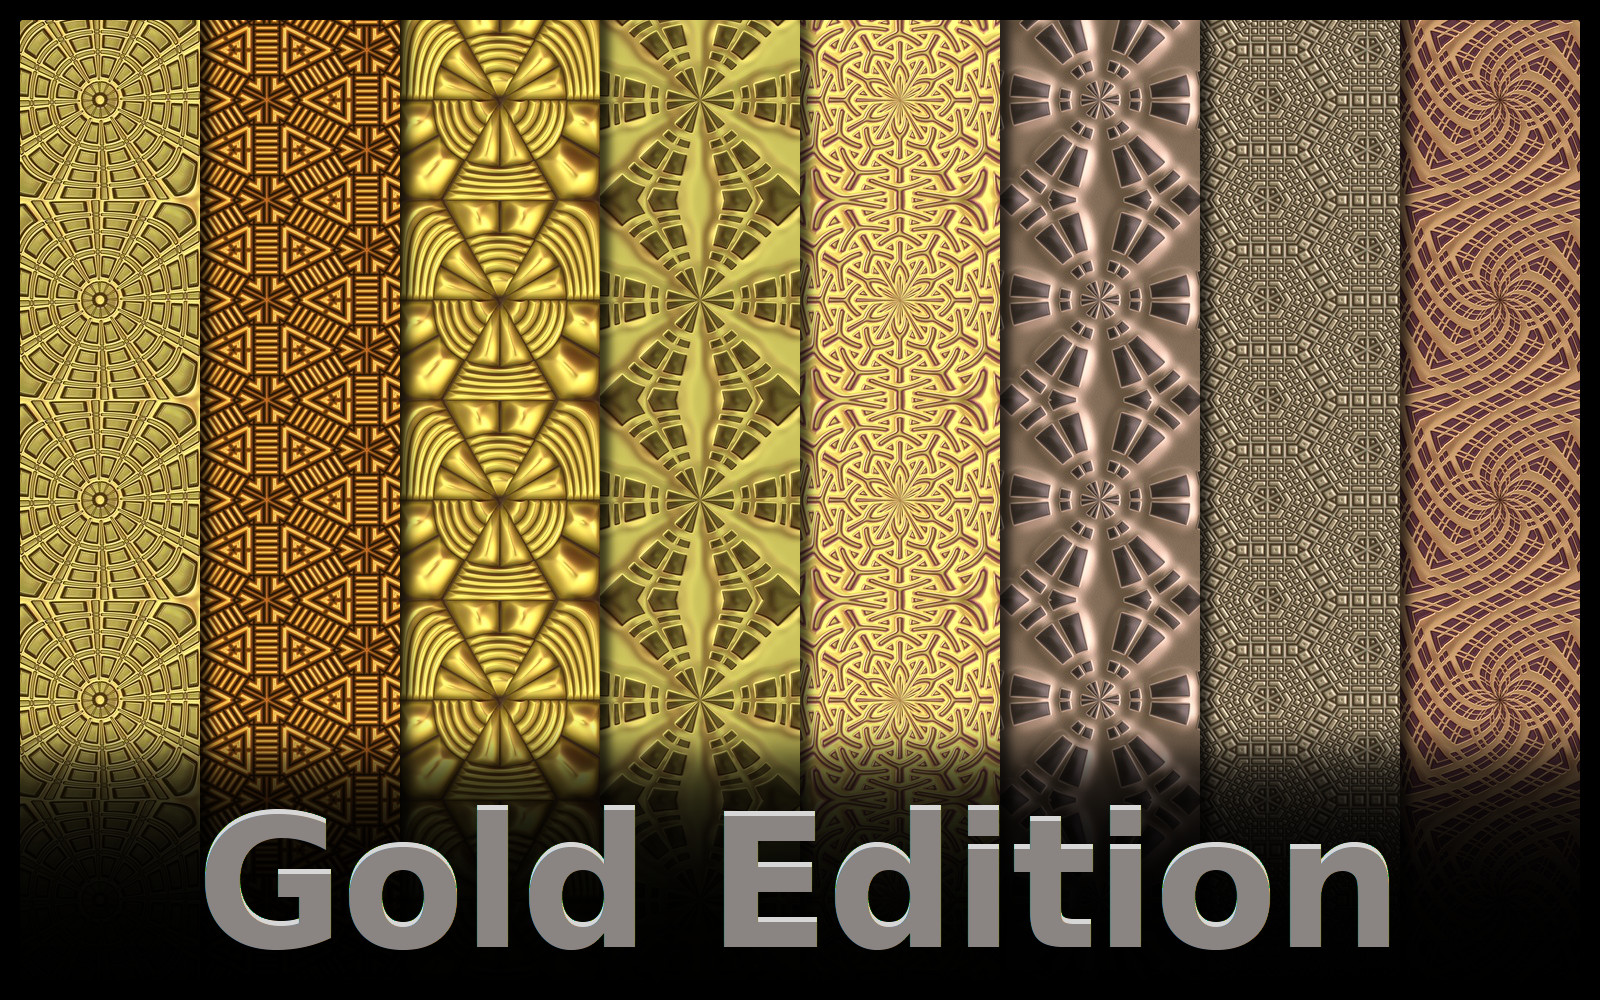 Gold Edition by GrindGod